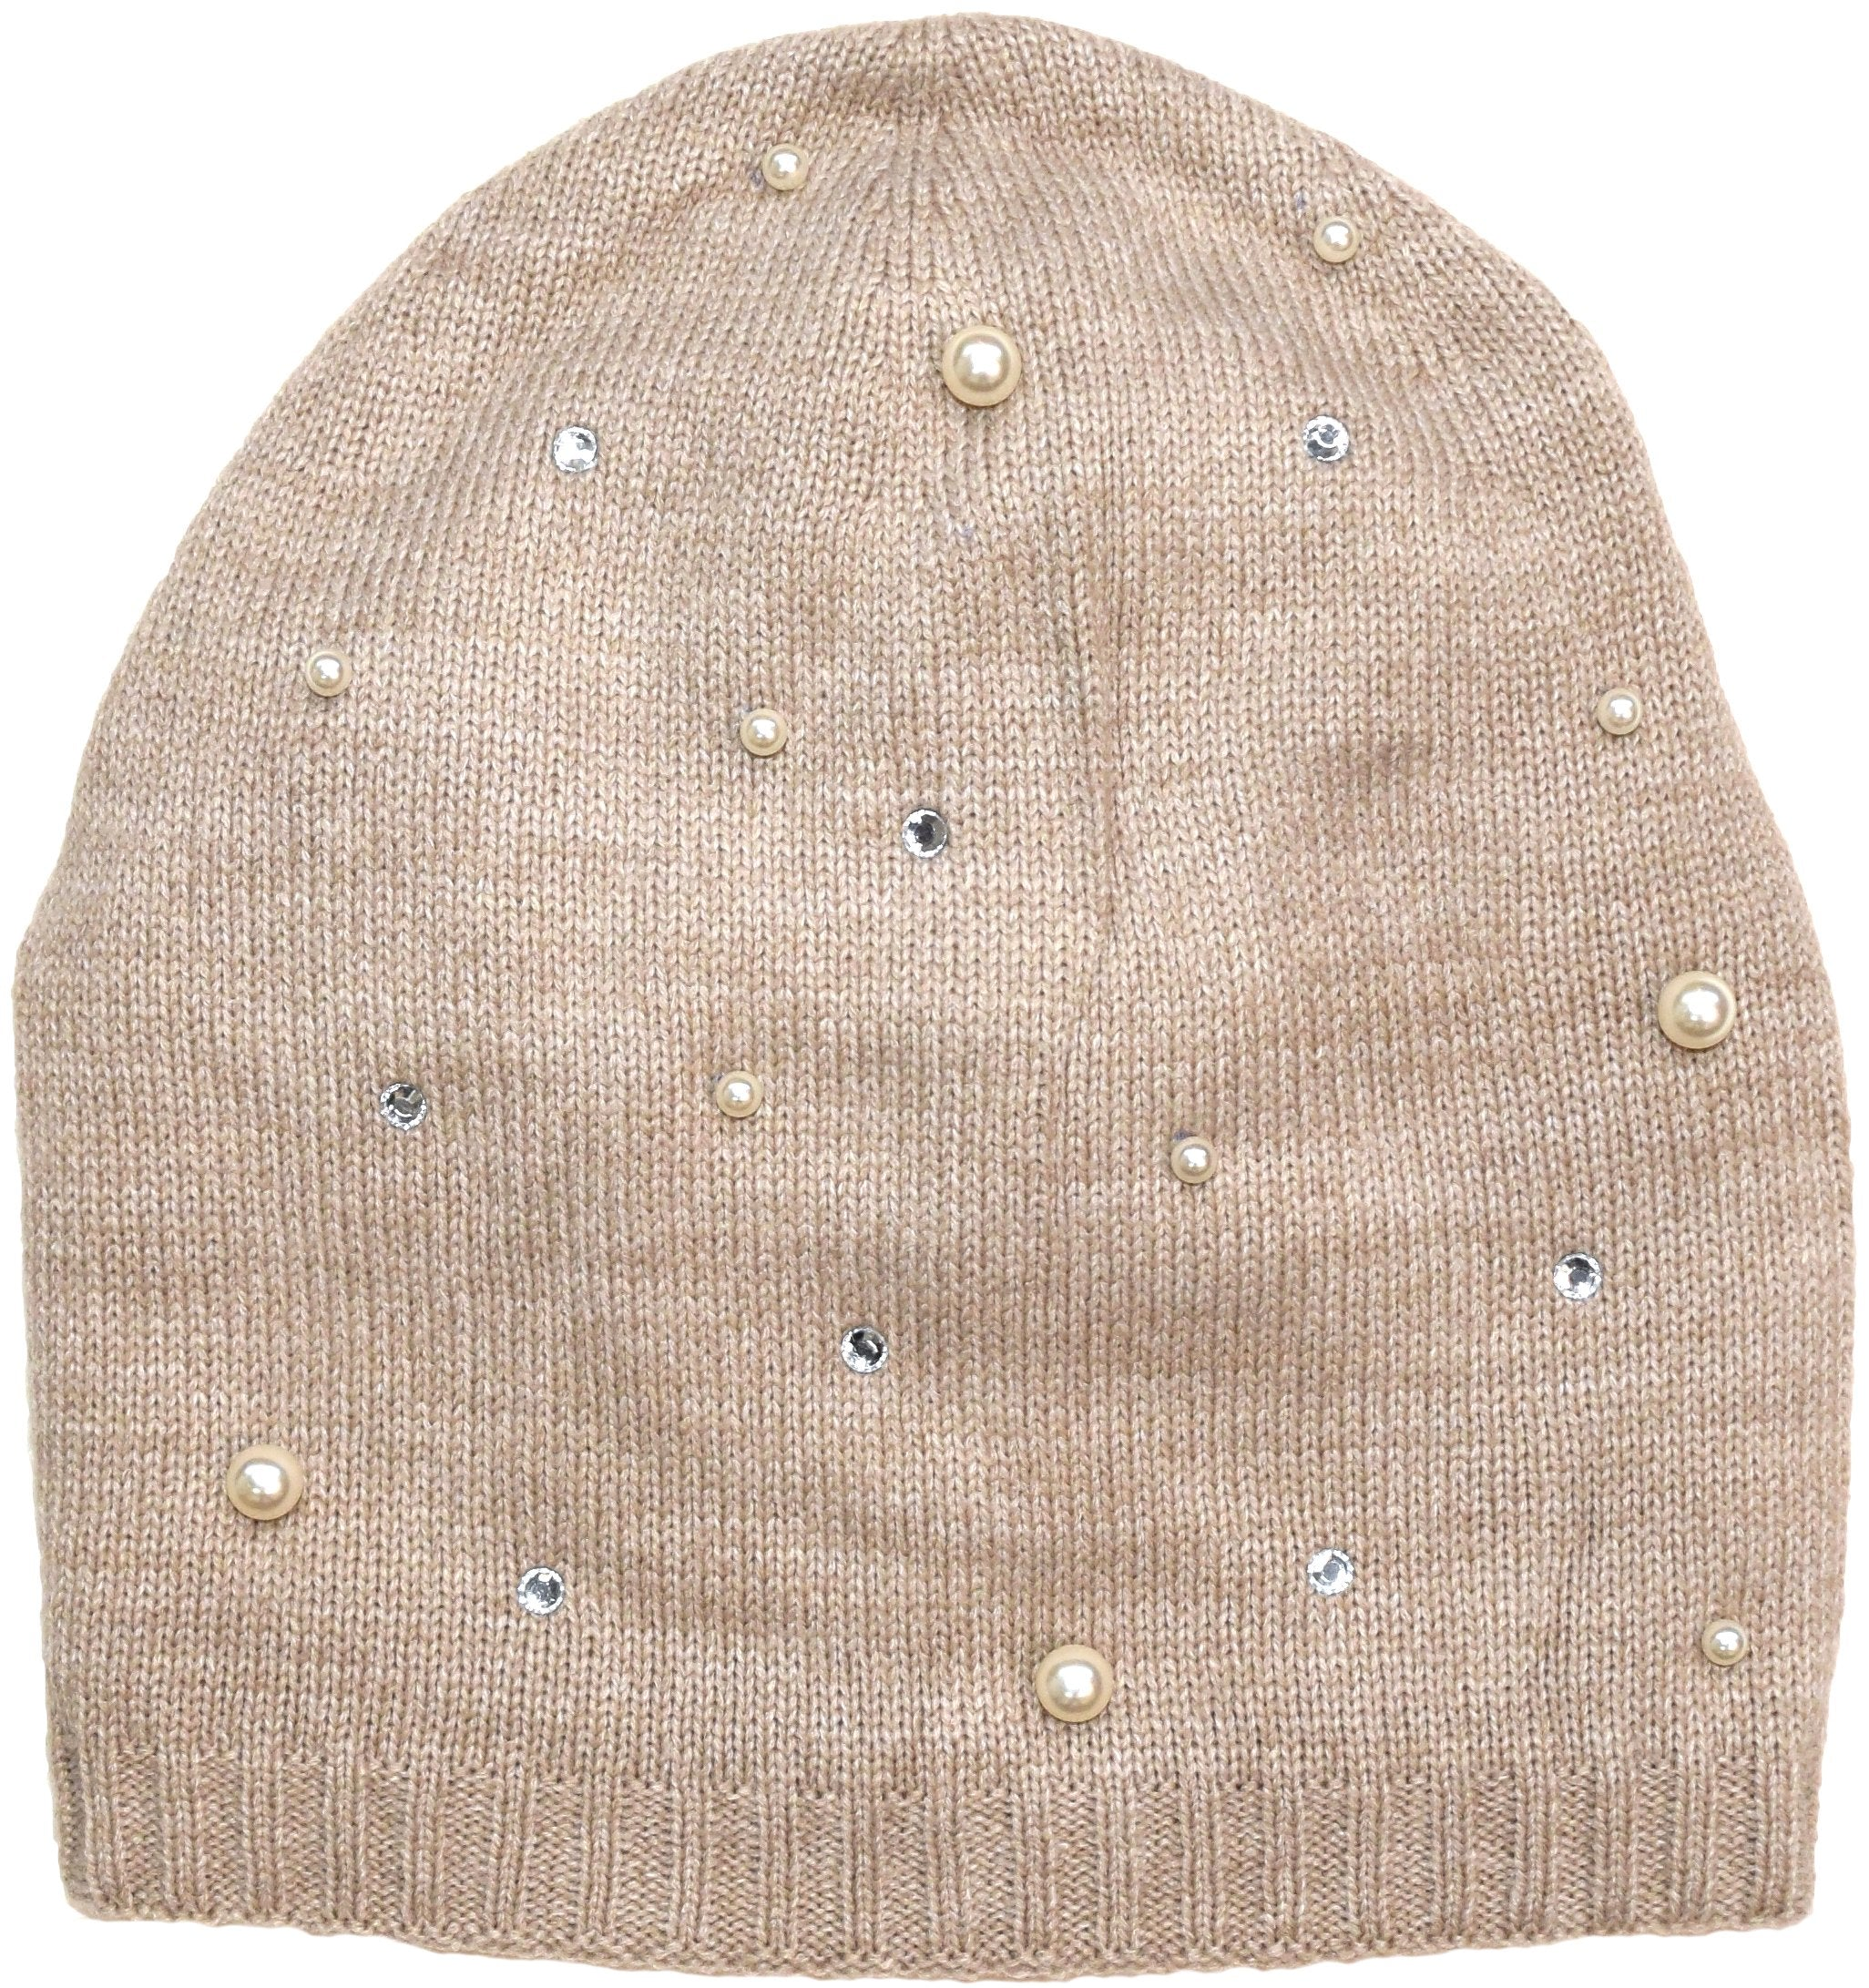 Lined Knit Hat Embellished with Faux Pearls